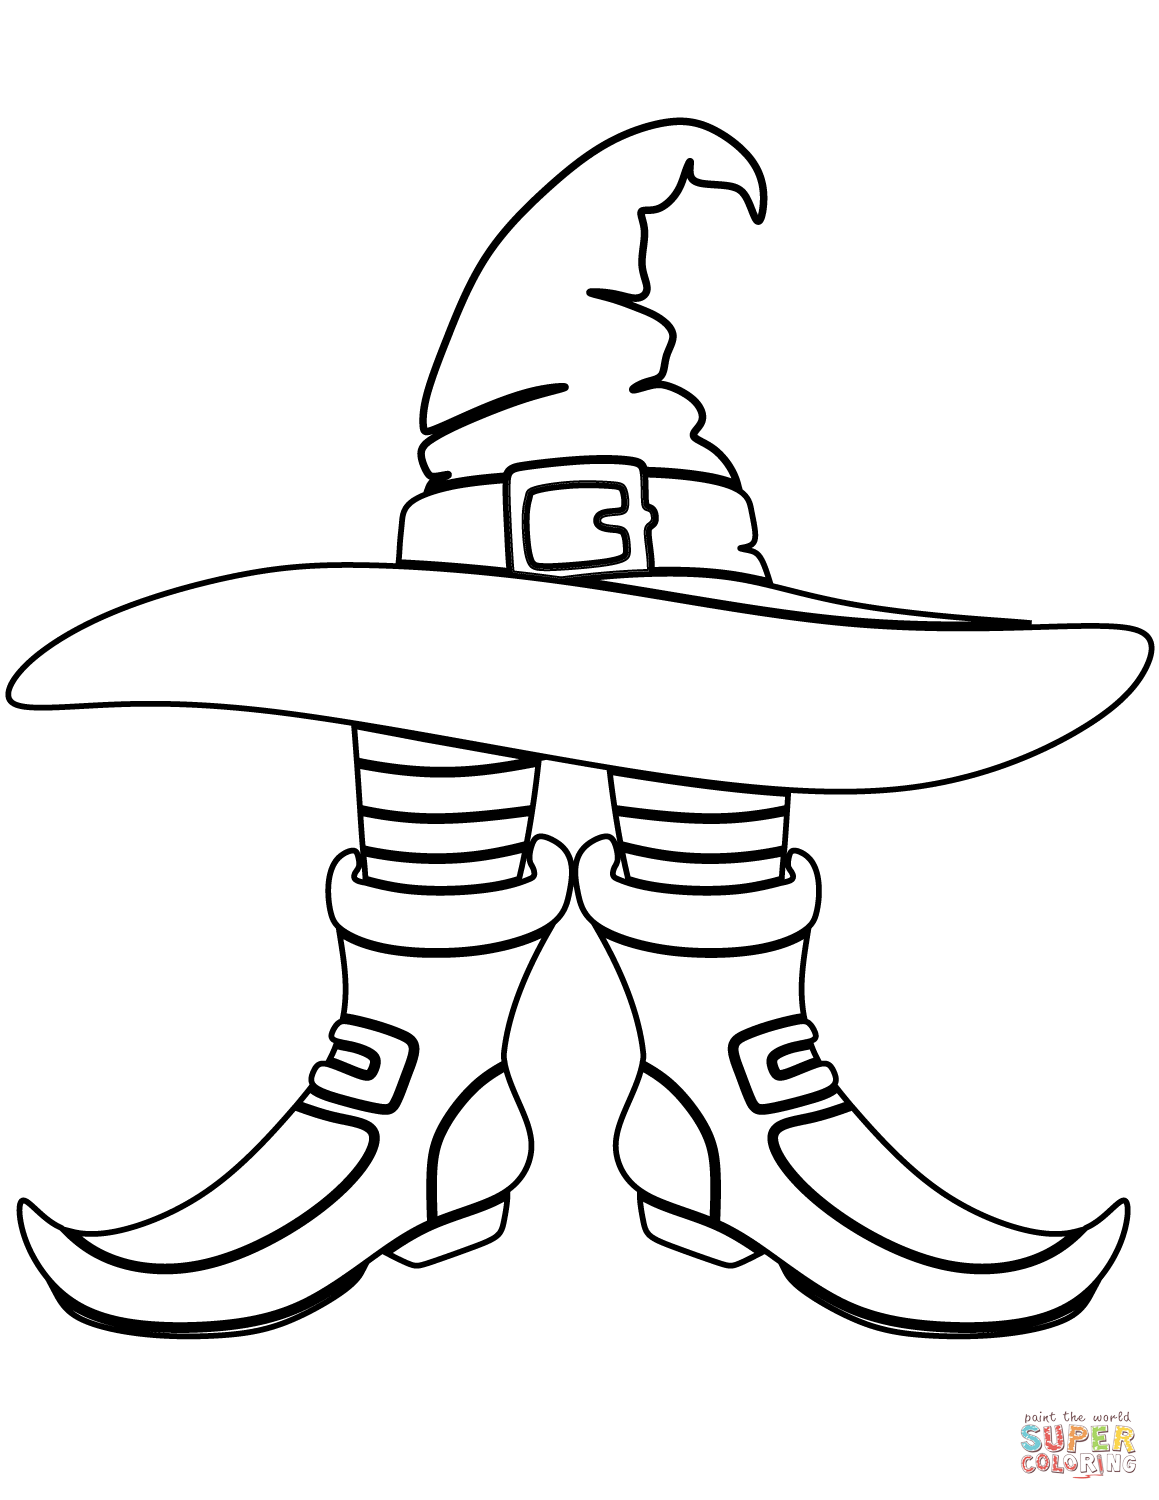 Witch Hat And Boots Coloring Page Free Printable Coloring Pages